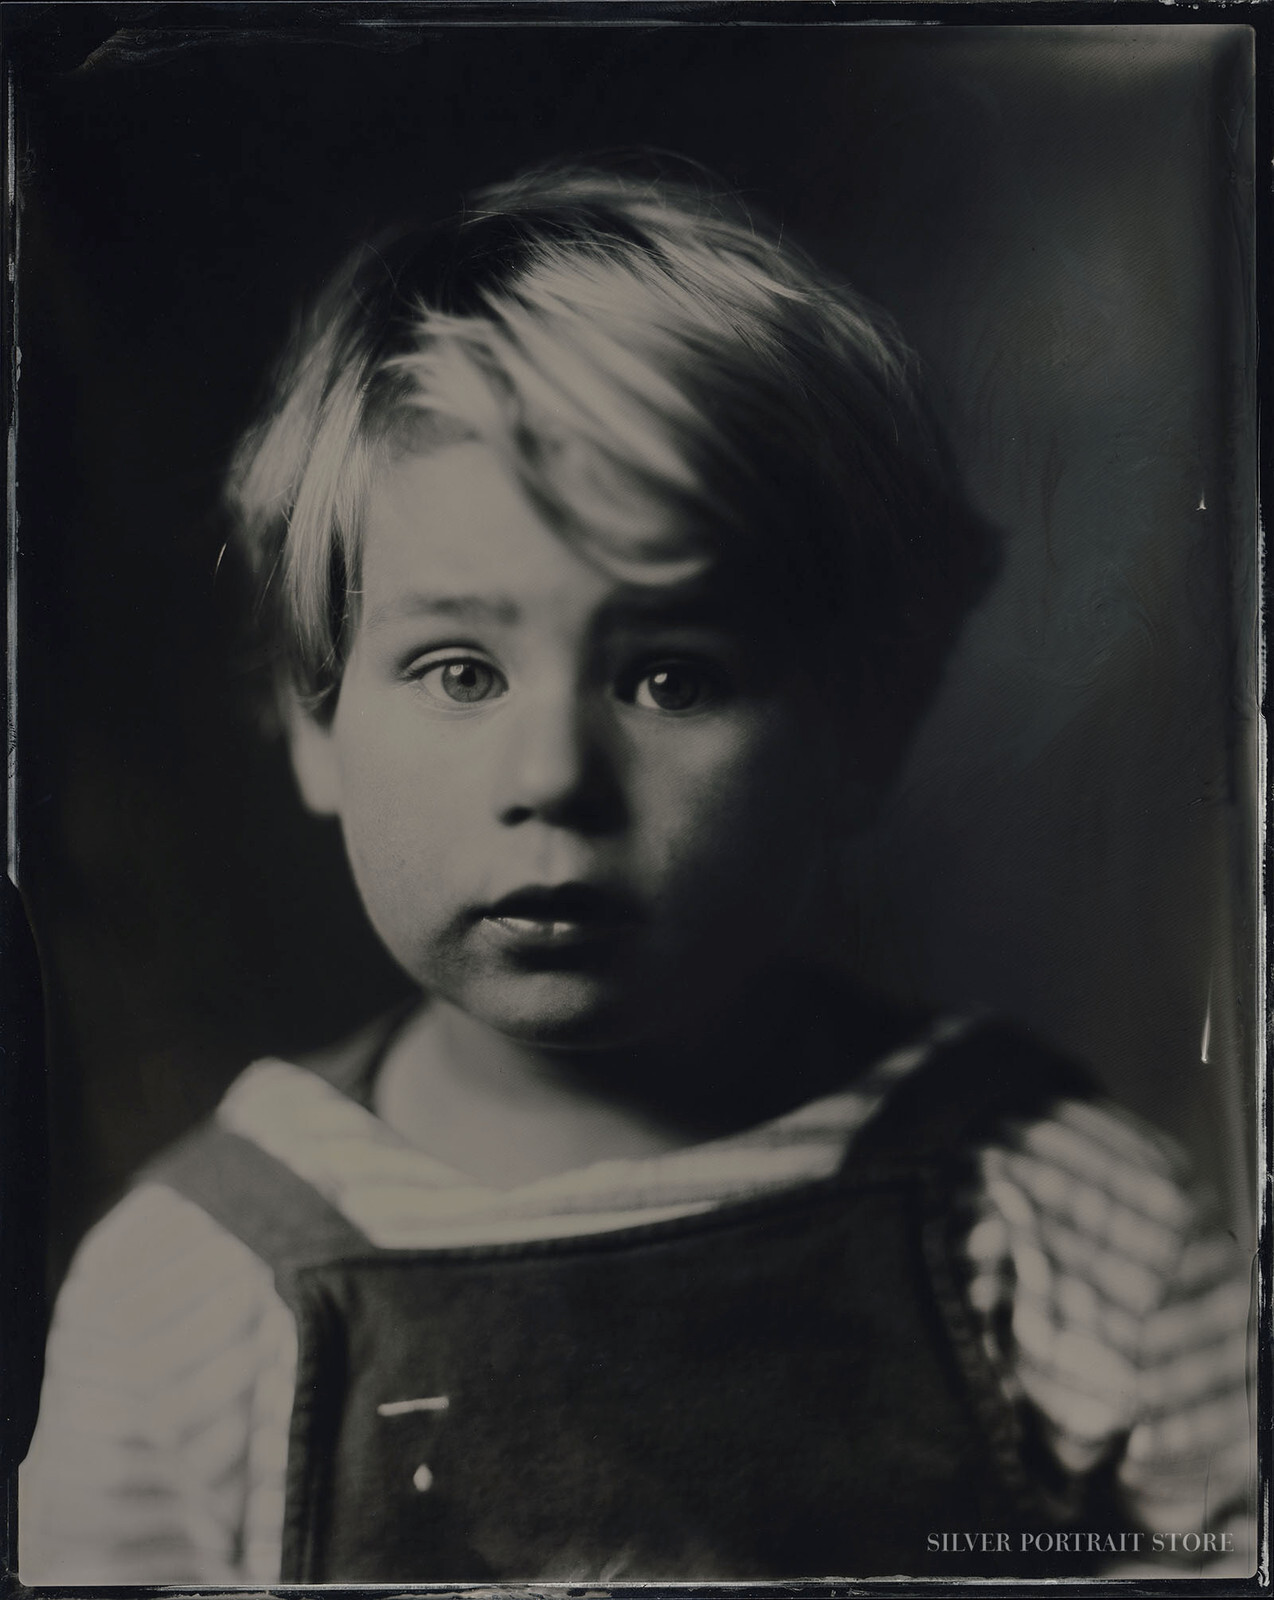 Hugo-Silver Portrait Store-scan from Wet plate collodion-Tintype 20 x 25 cm.